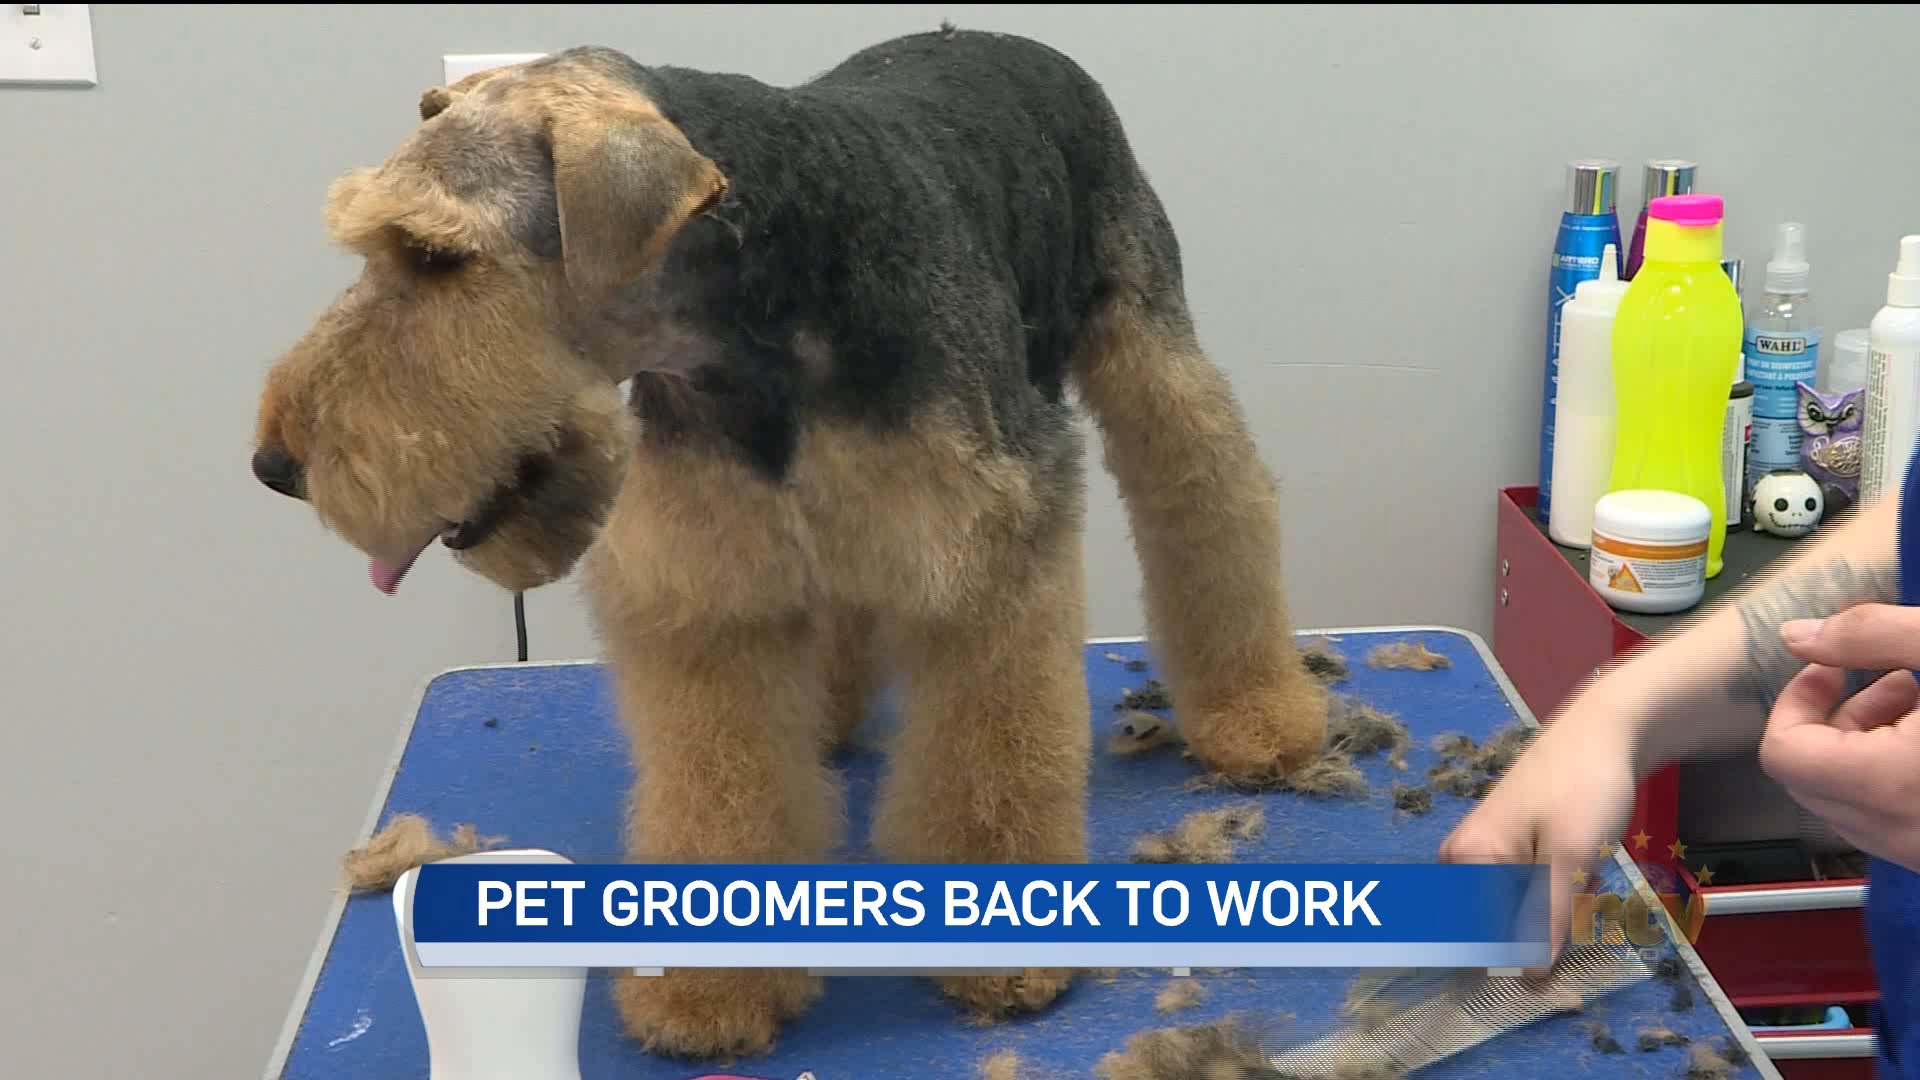 Pet groomers back in business under new guidelines